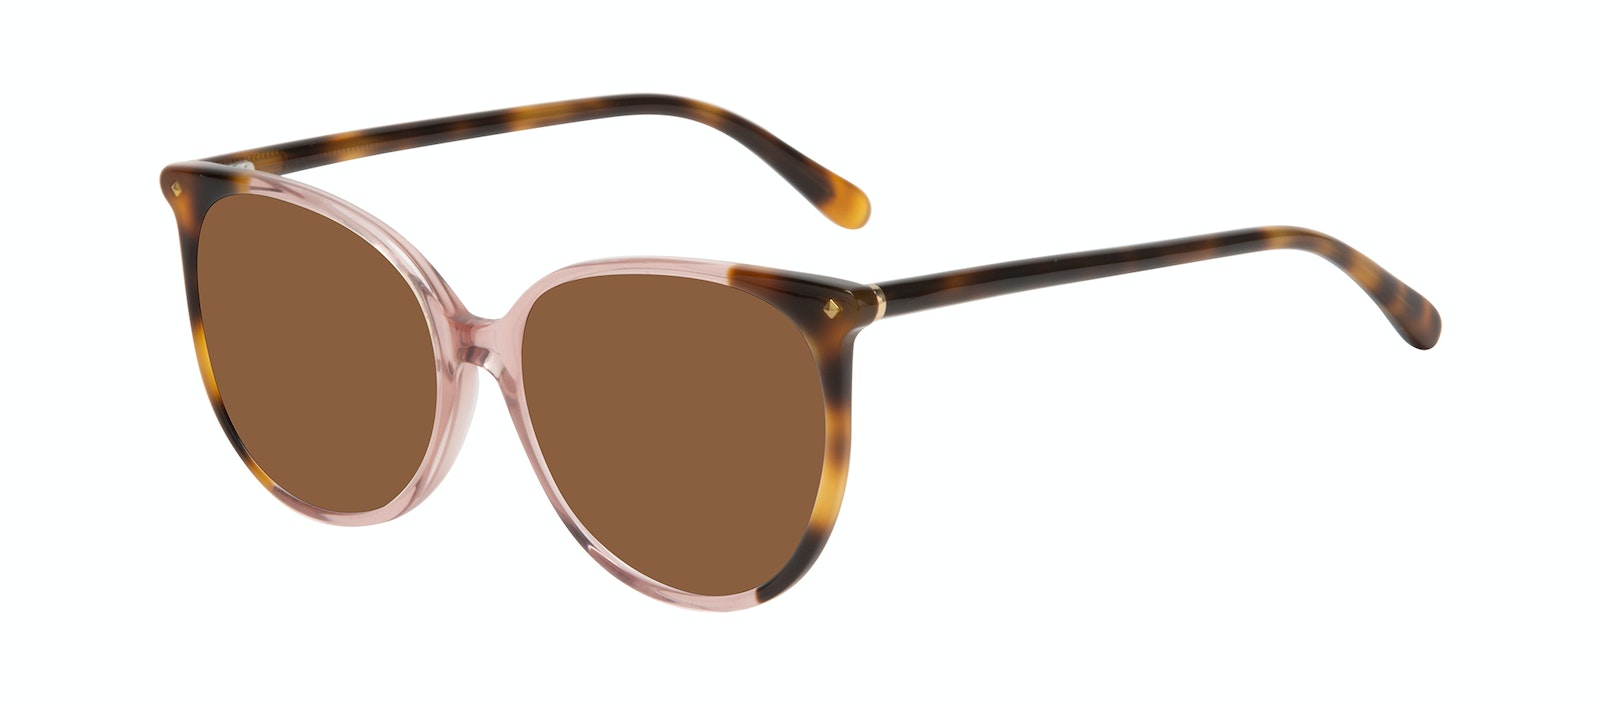 Affordable Fashion Glasses Round Sunglasses Women Area Rose Tort Tilt